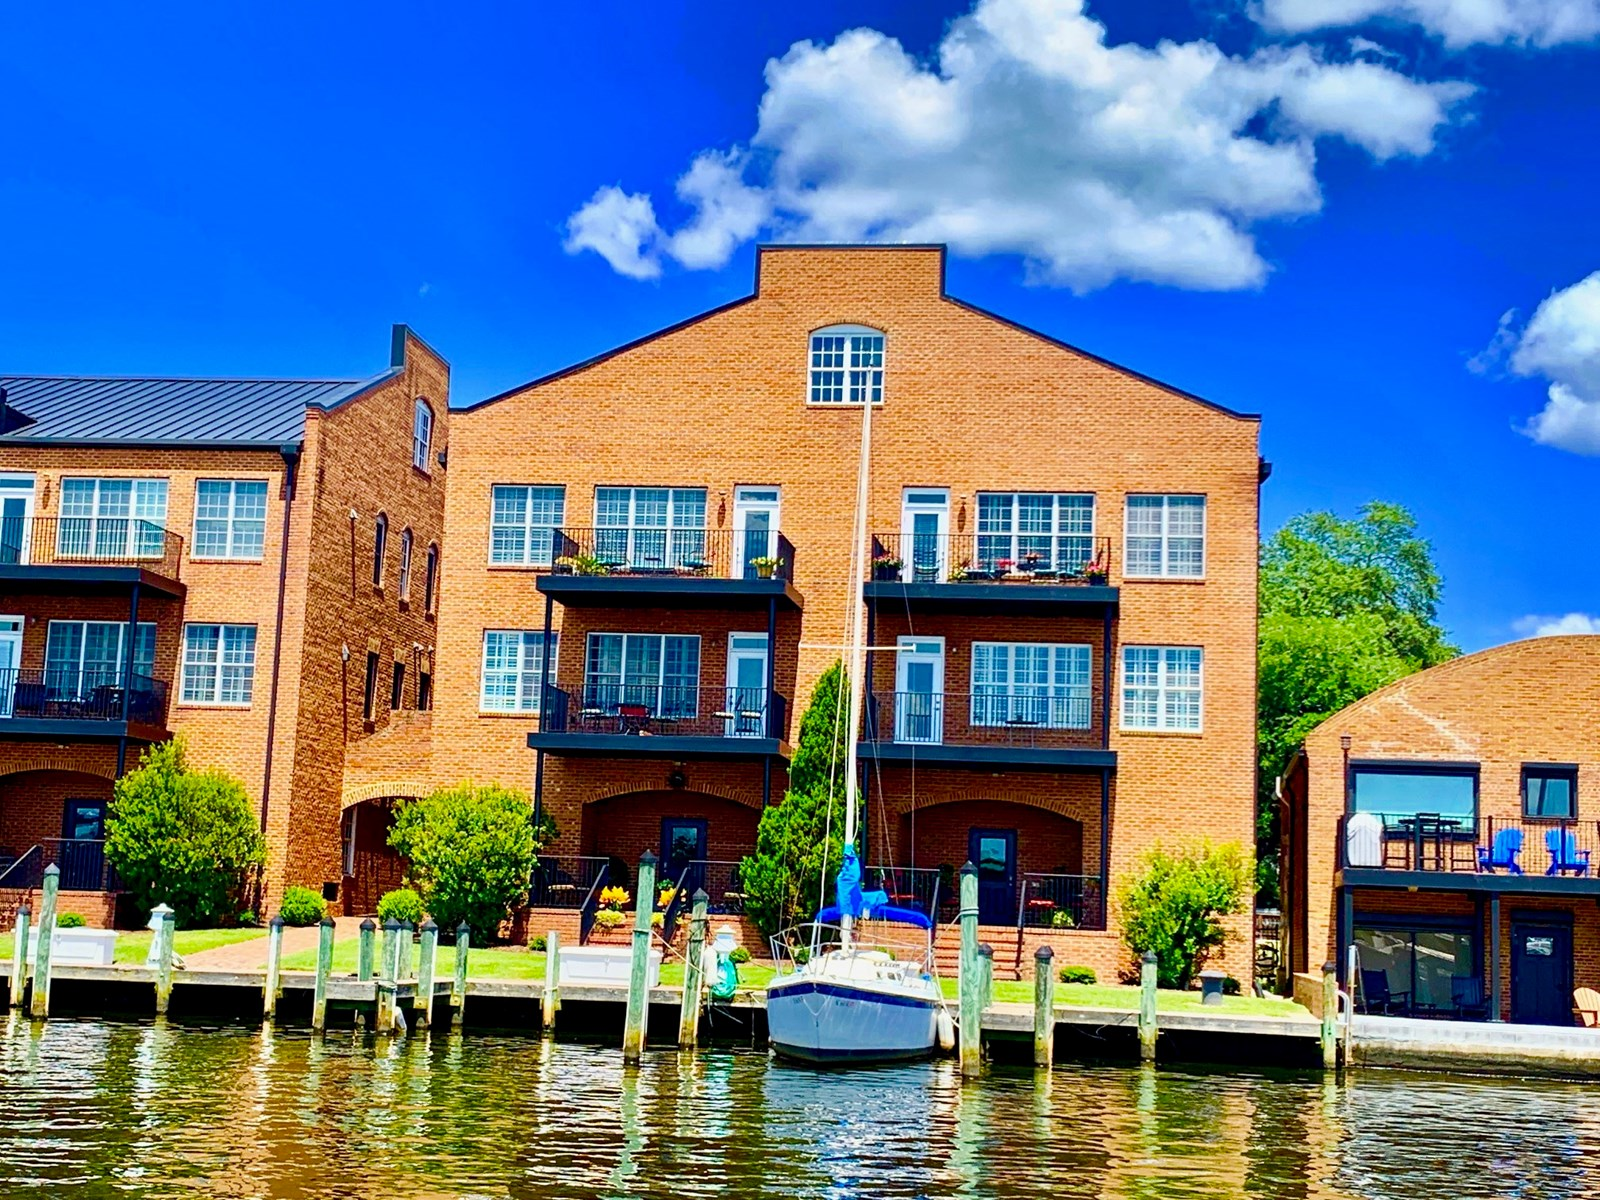 Waterfront condo for sale Washington/Beaufort County NC